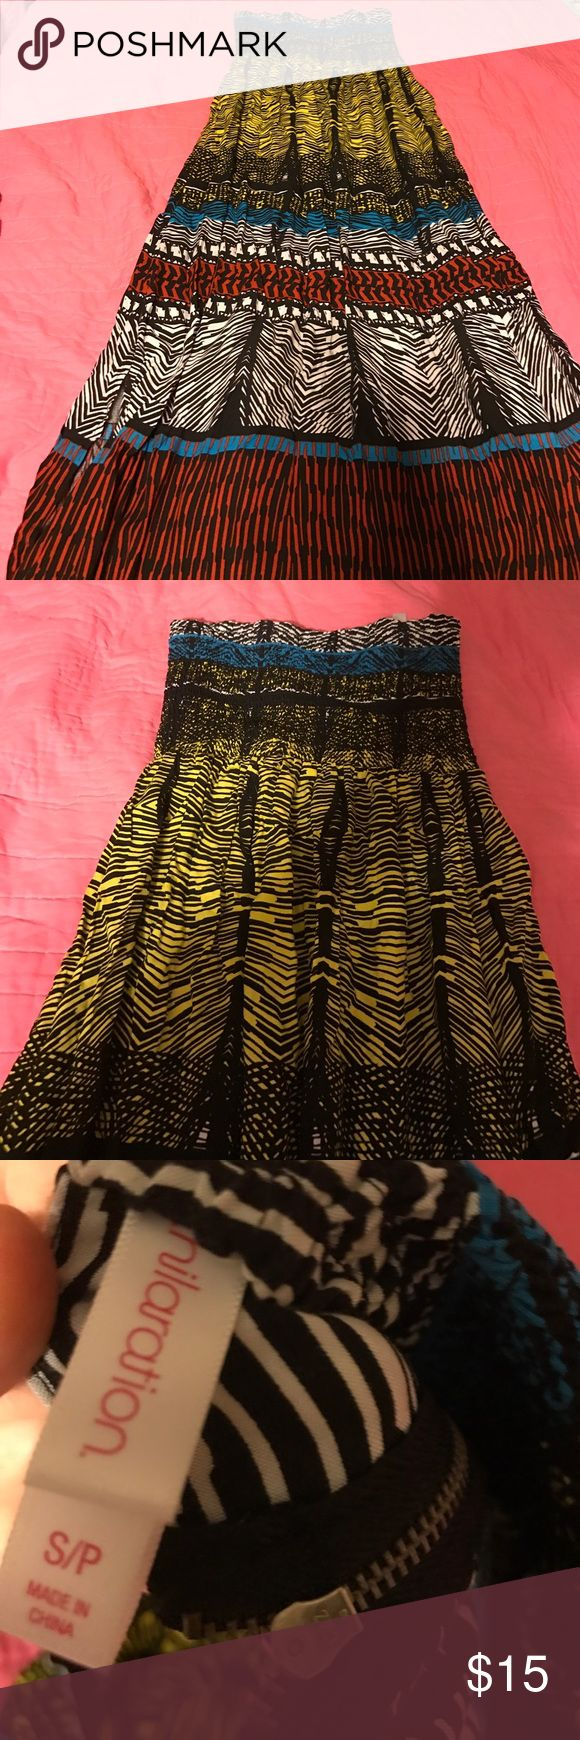 Target brand aztec maxi dress size small Very cute Aztec/tribal print maxi dress. Only worn once excellent condition. No flaws or signs of wear Xhilaration Dresses Maxi